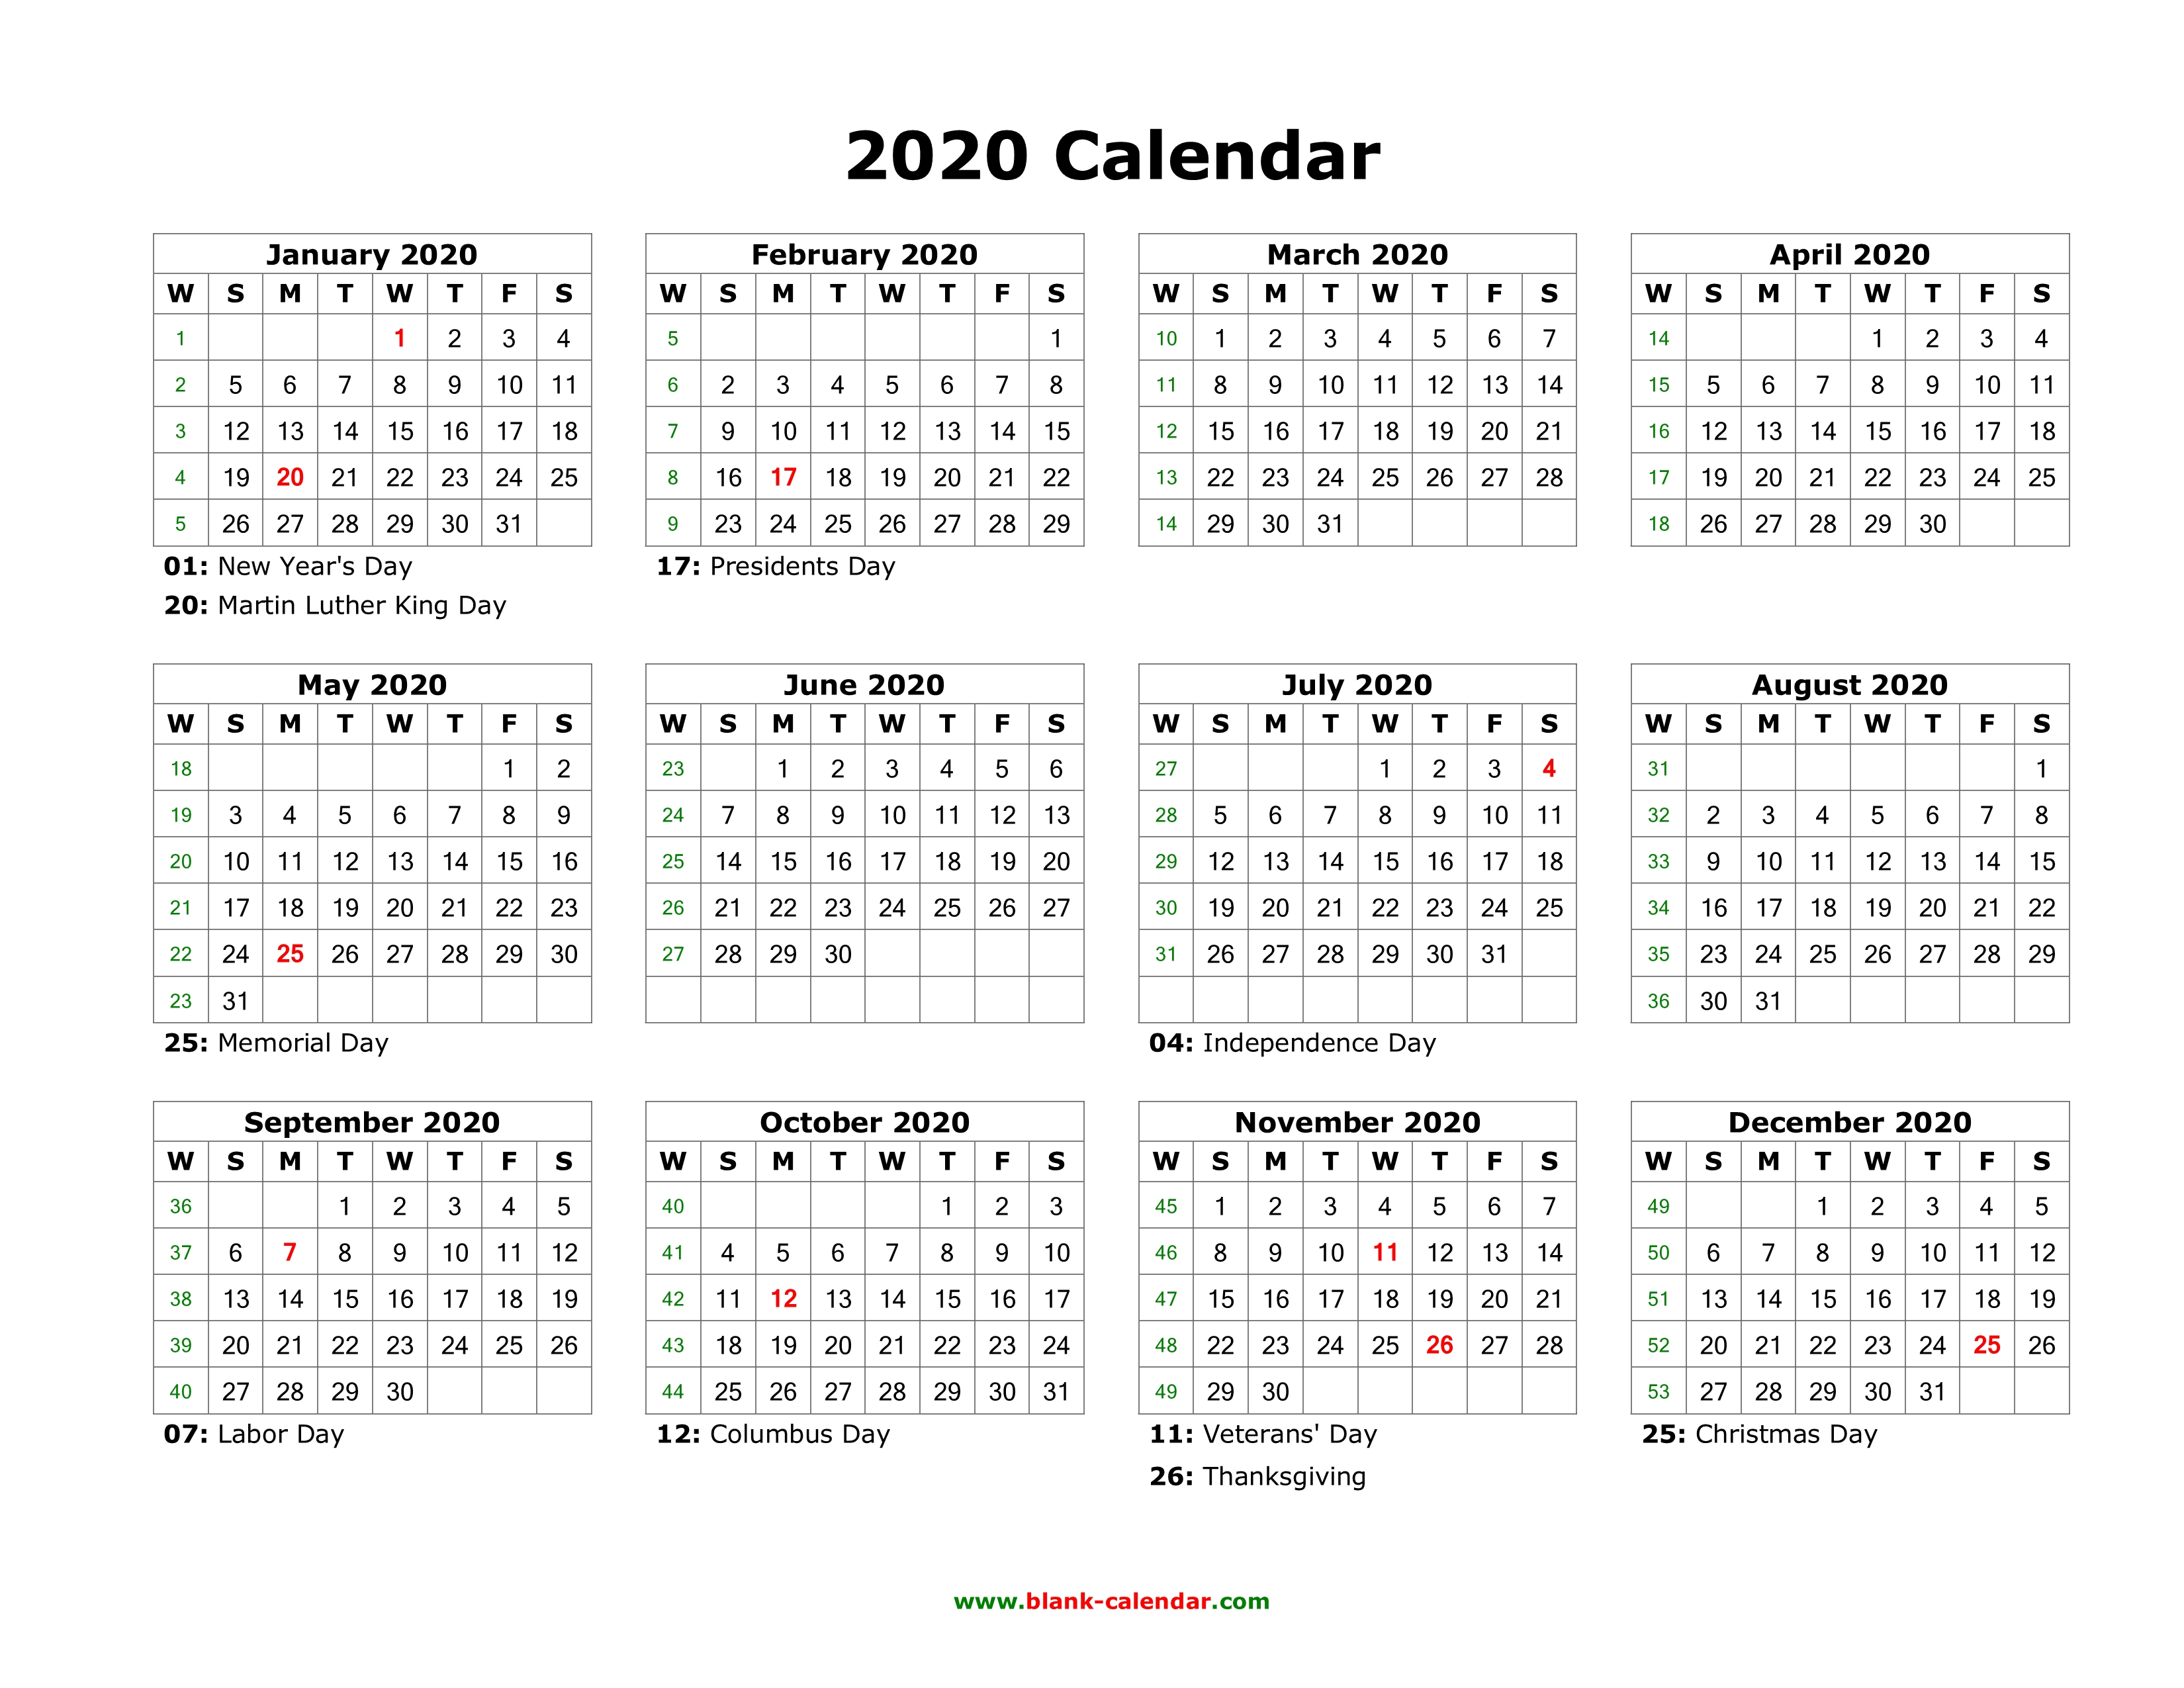 Blank Calendar 2020 | Free Download Calendar Templates for 2020 Printable Calendar By Month